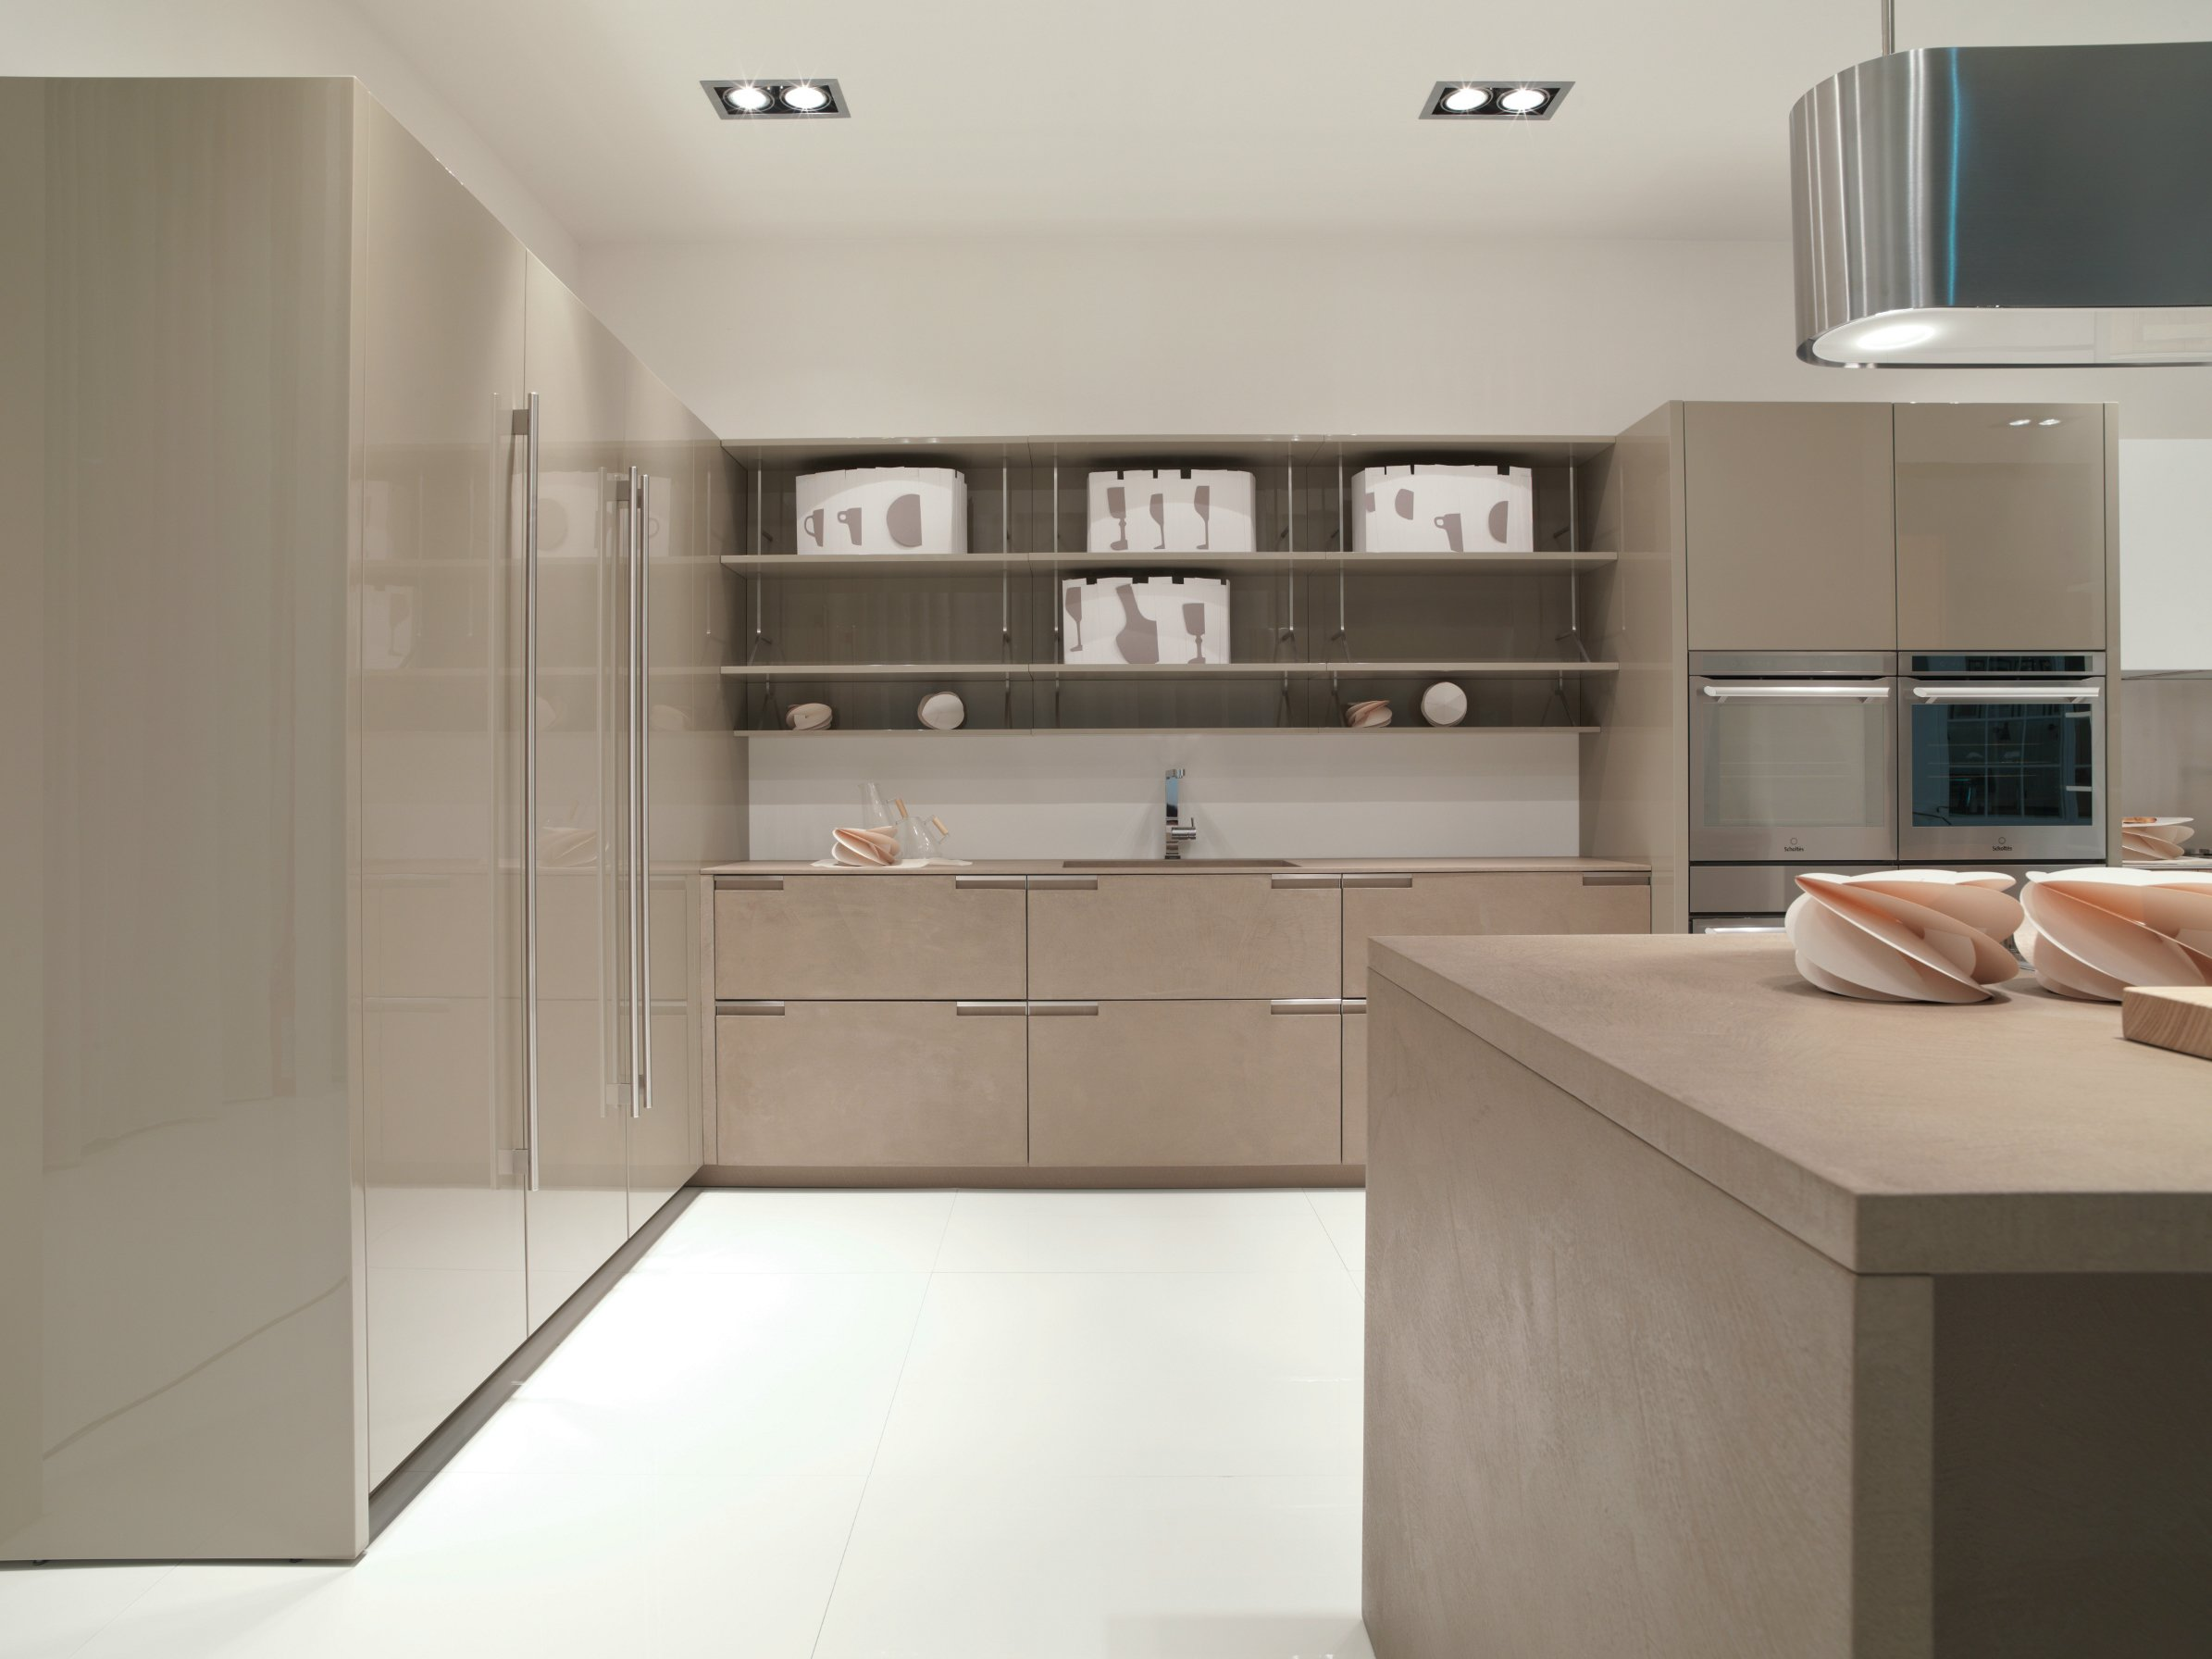 noblesse mdf kitchen by aster cucine design lorenzo granocchia